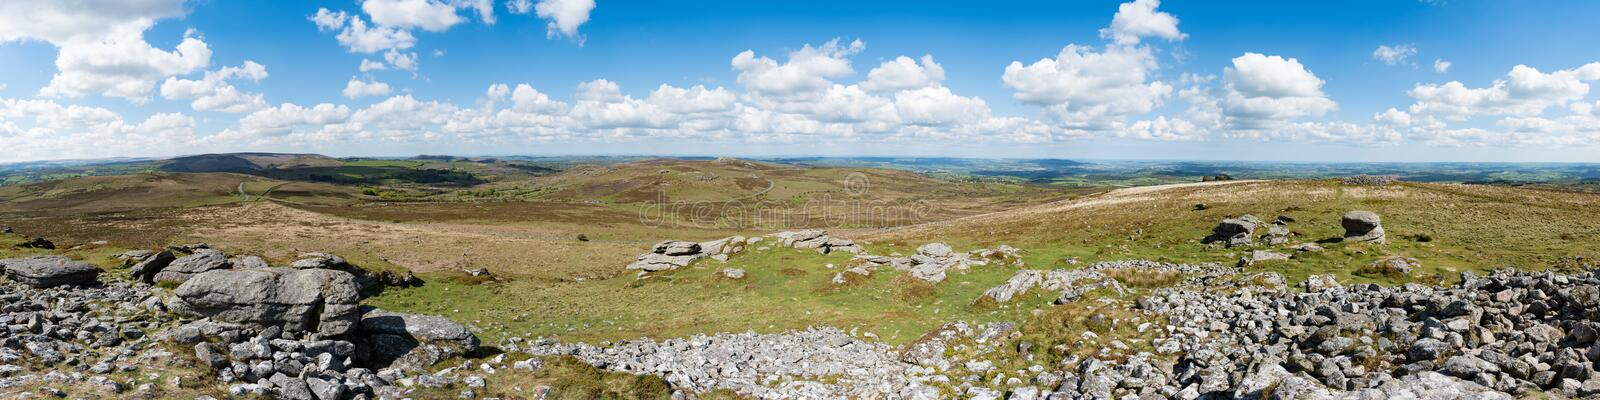 Panorama from Rippon Tor of, from left to right, Emsworthy Rocks, Saddle Tor and Haytor across moorland of Dartmoor National Park, stock images